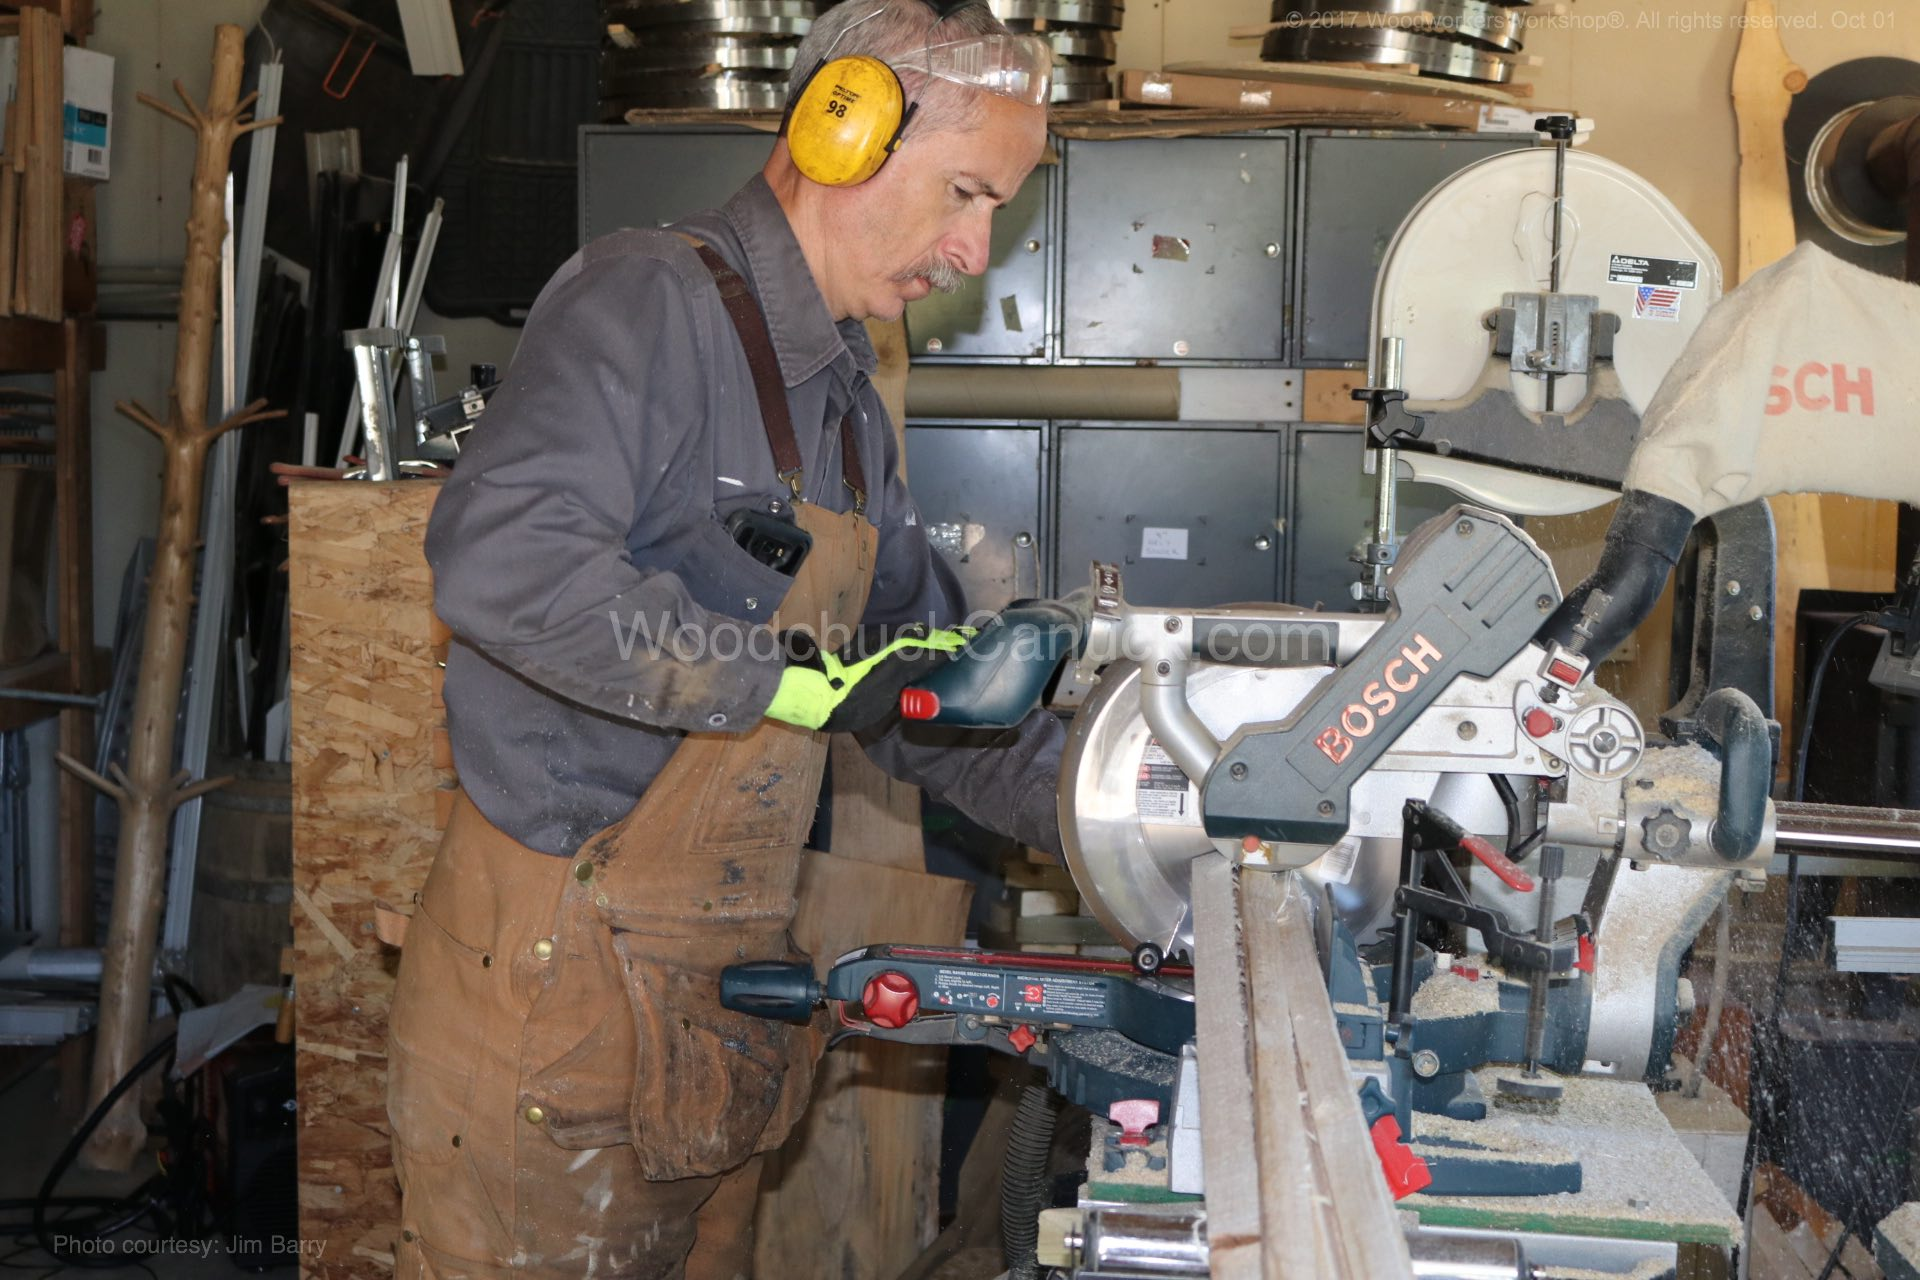 Jim on the miter saw.